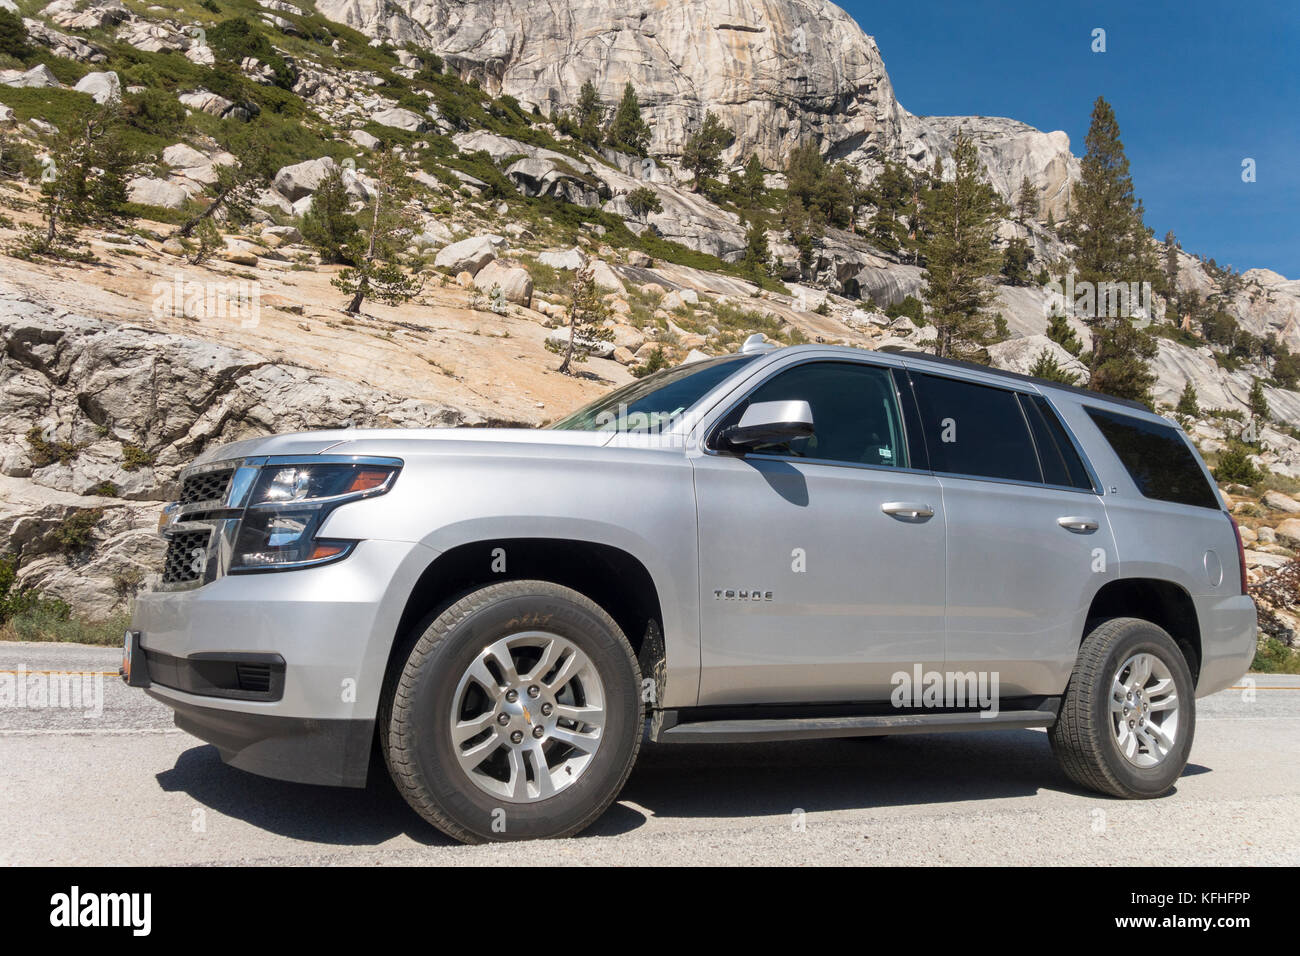 Big SUV Chevrolet Tahoe Full size SUV Brand new 2018 Chevy Tahoe LT parked on mountain road. - Stock Image